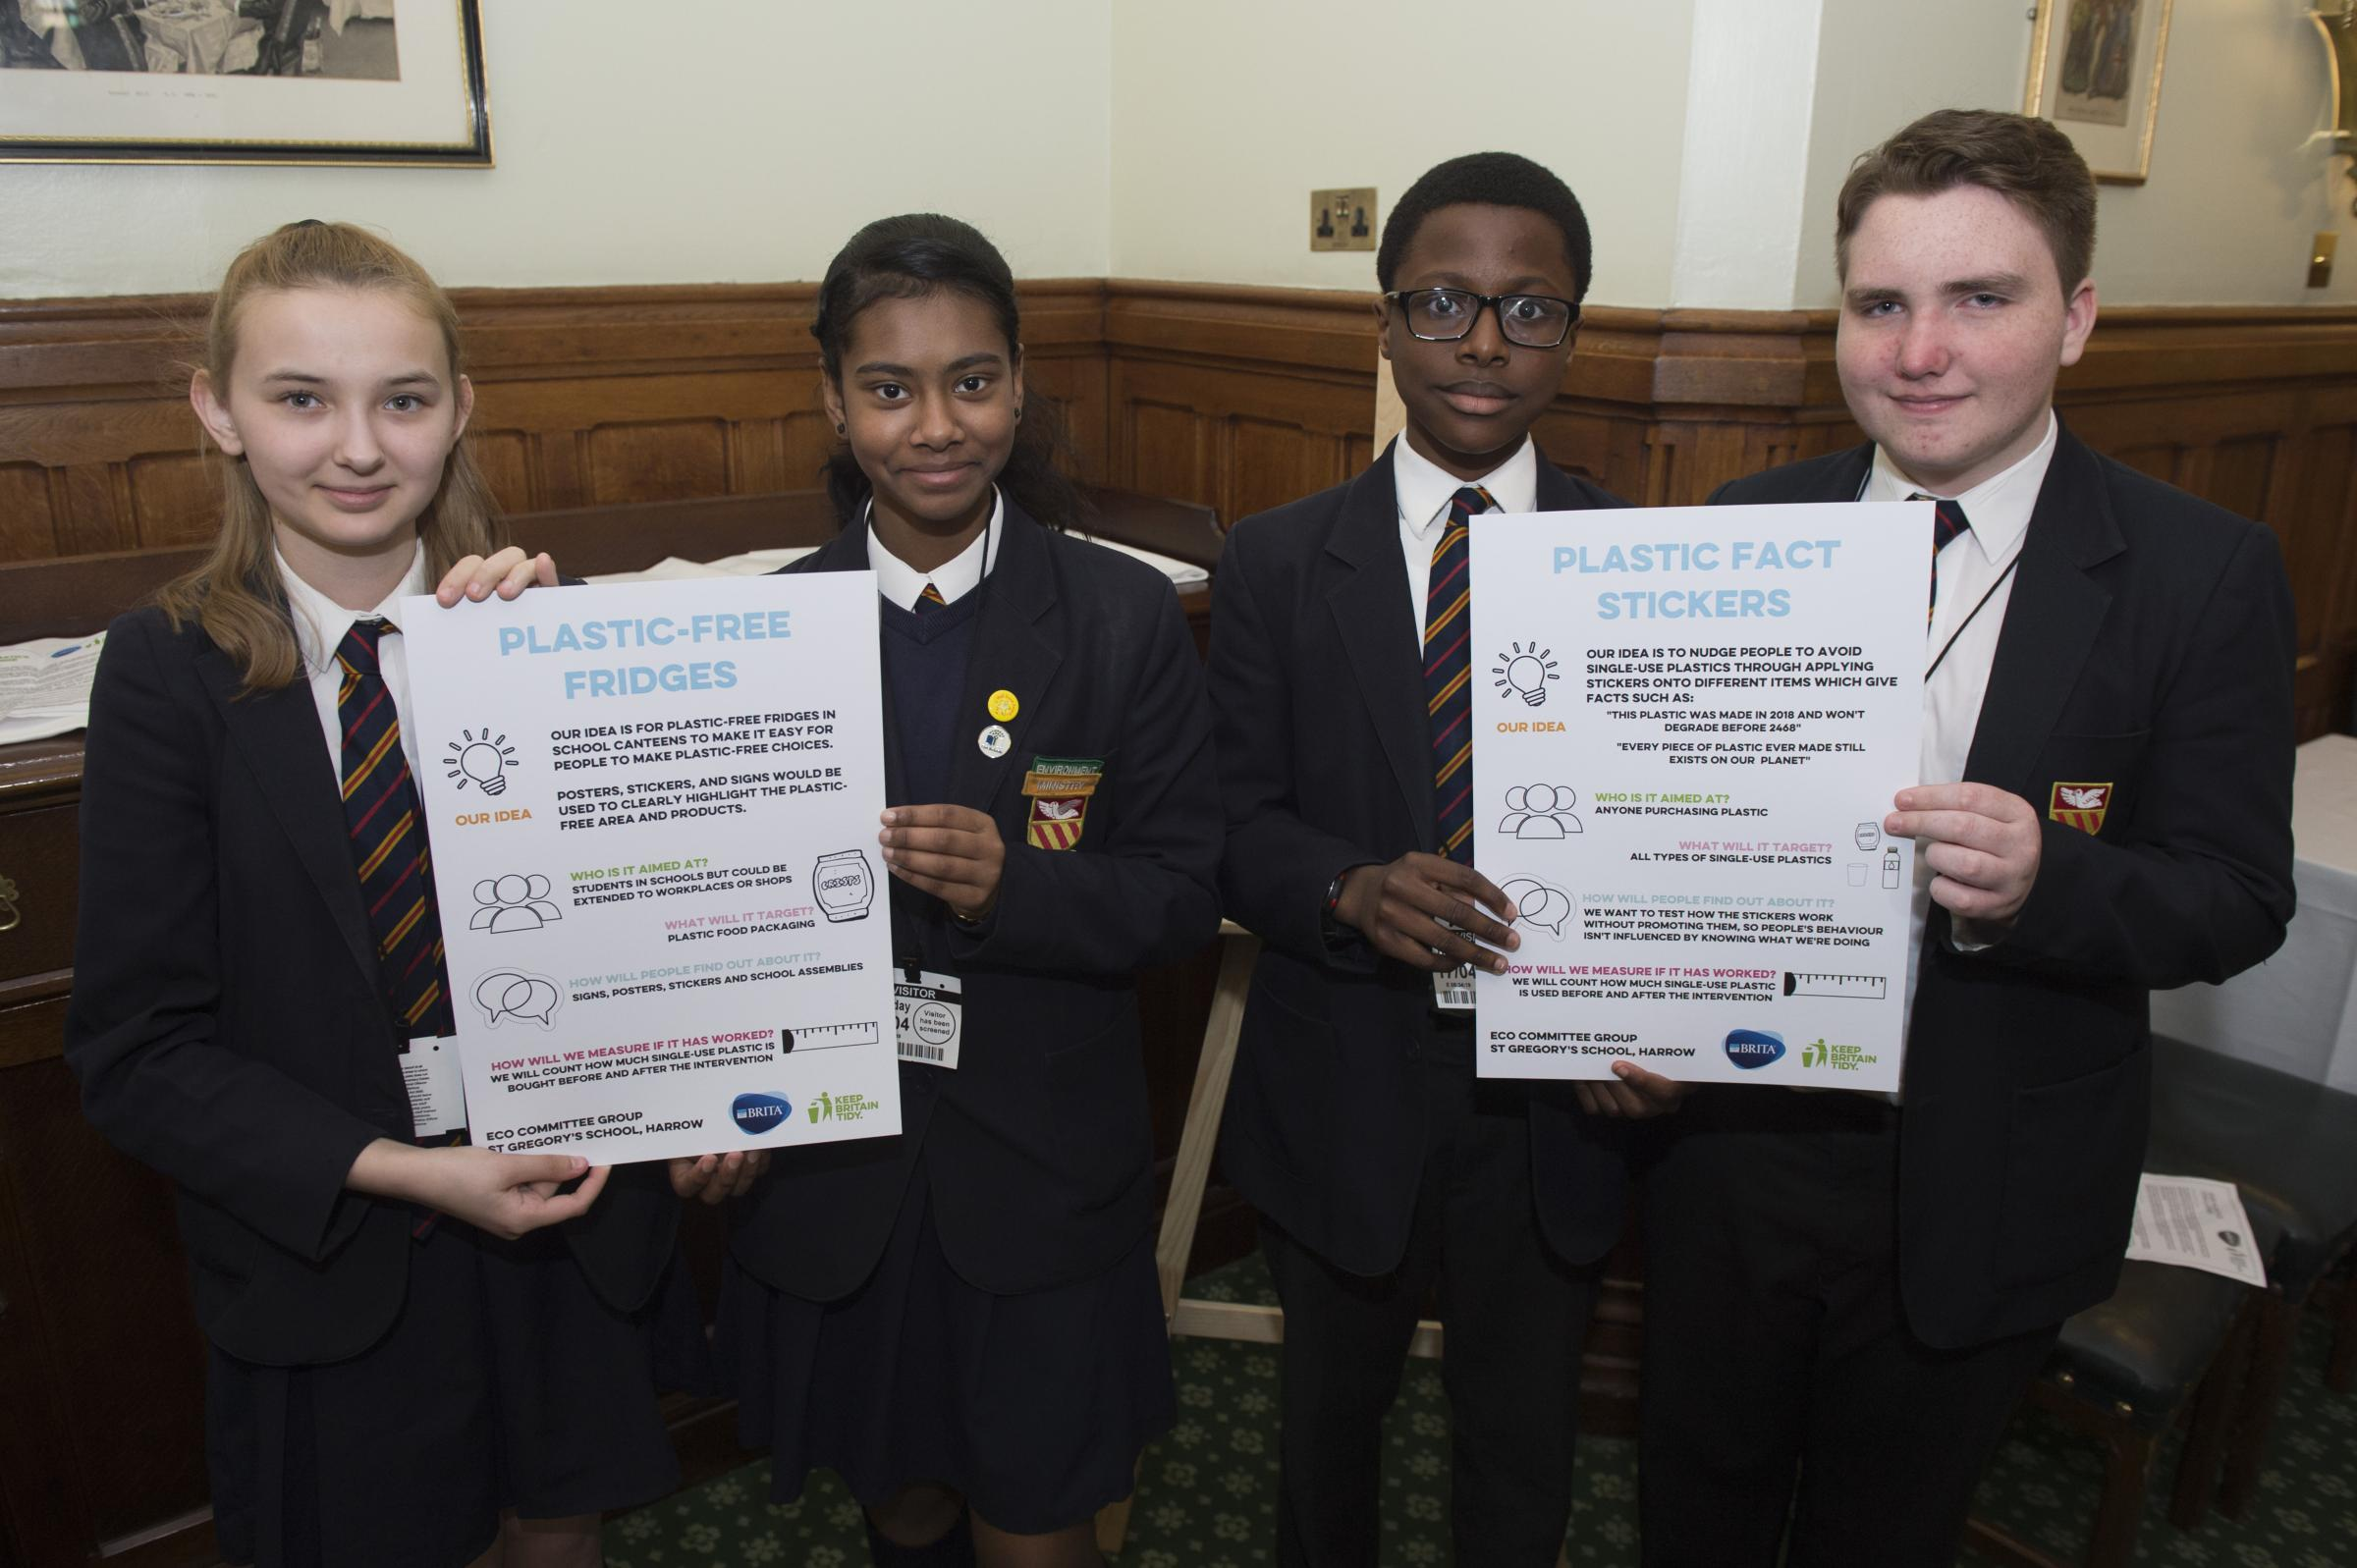 St Gregory's School work with major charities to combat single-use plastics